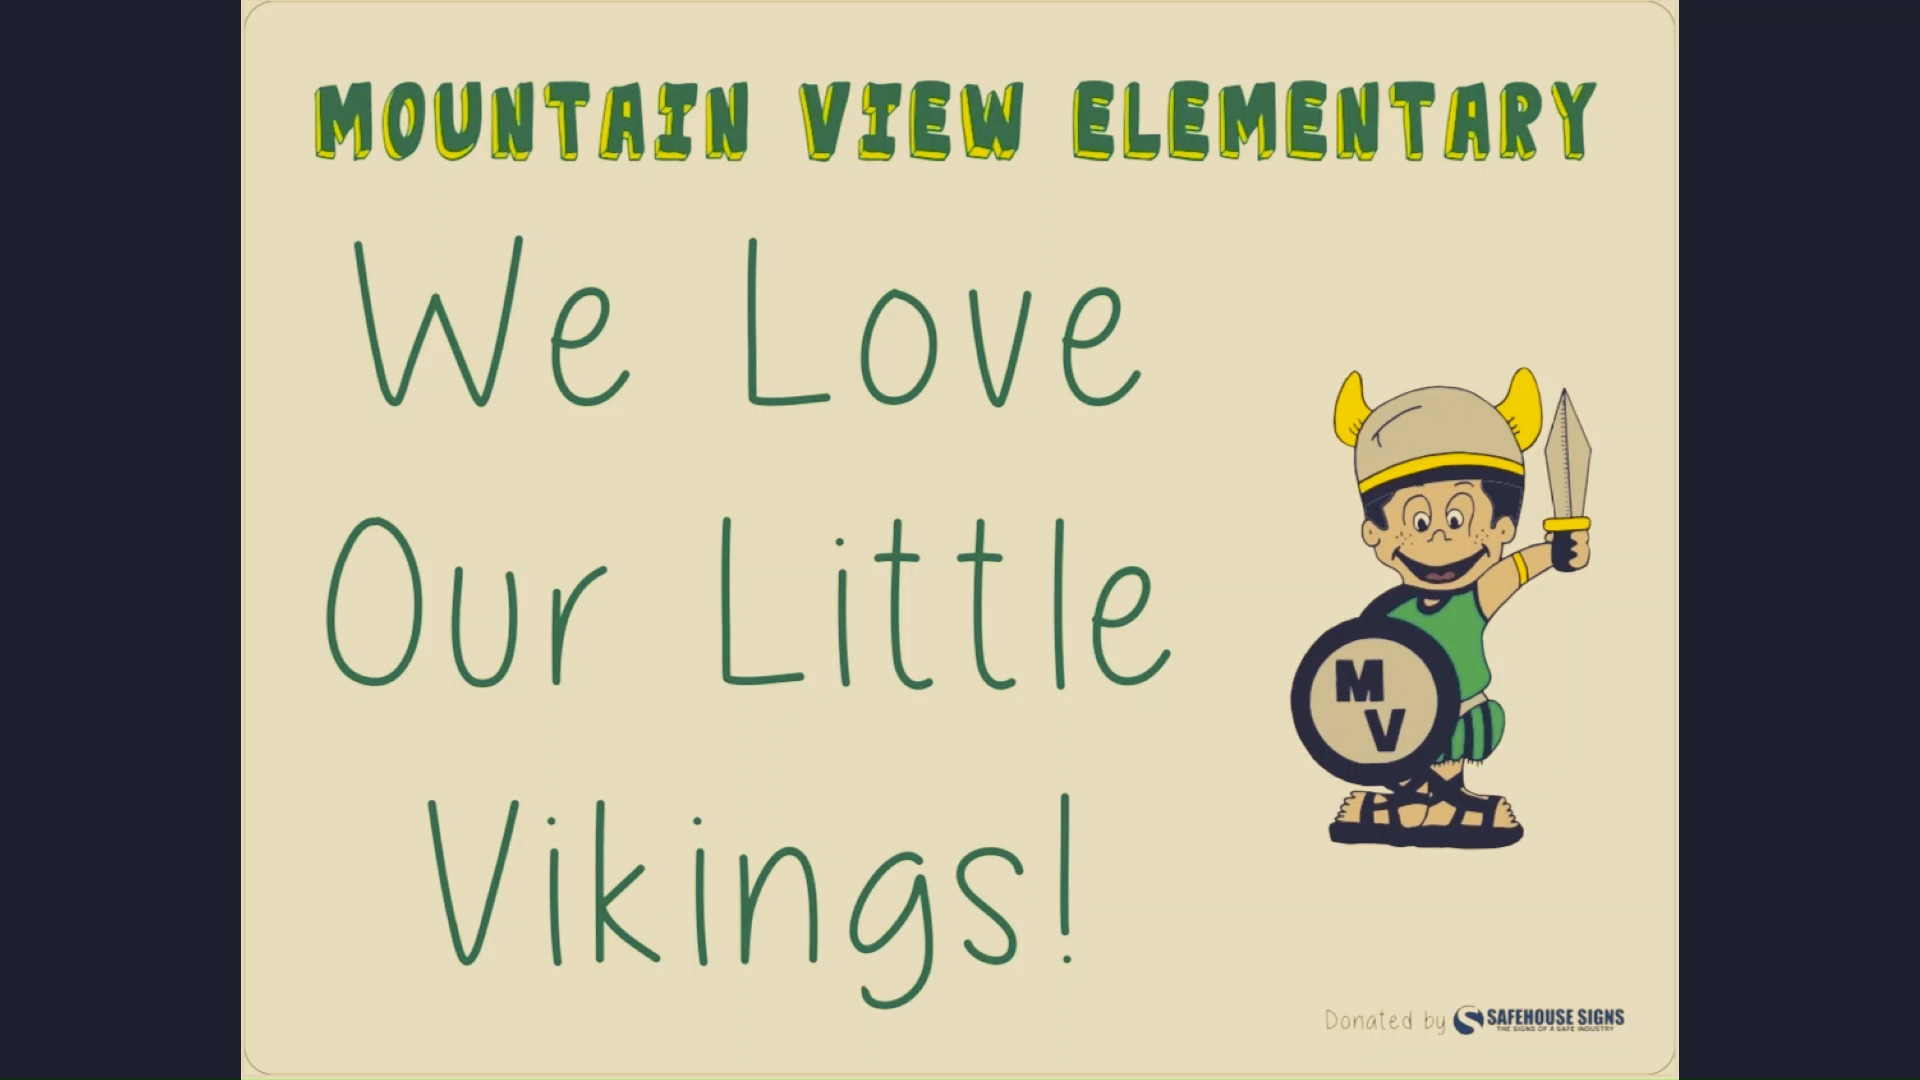 We Love Our Little Vikings!